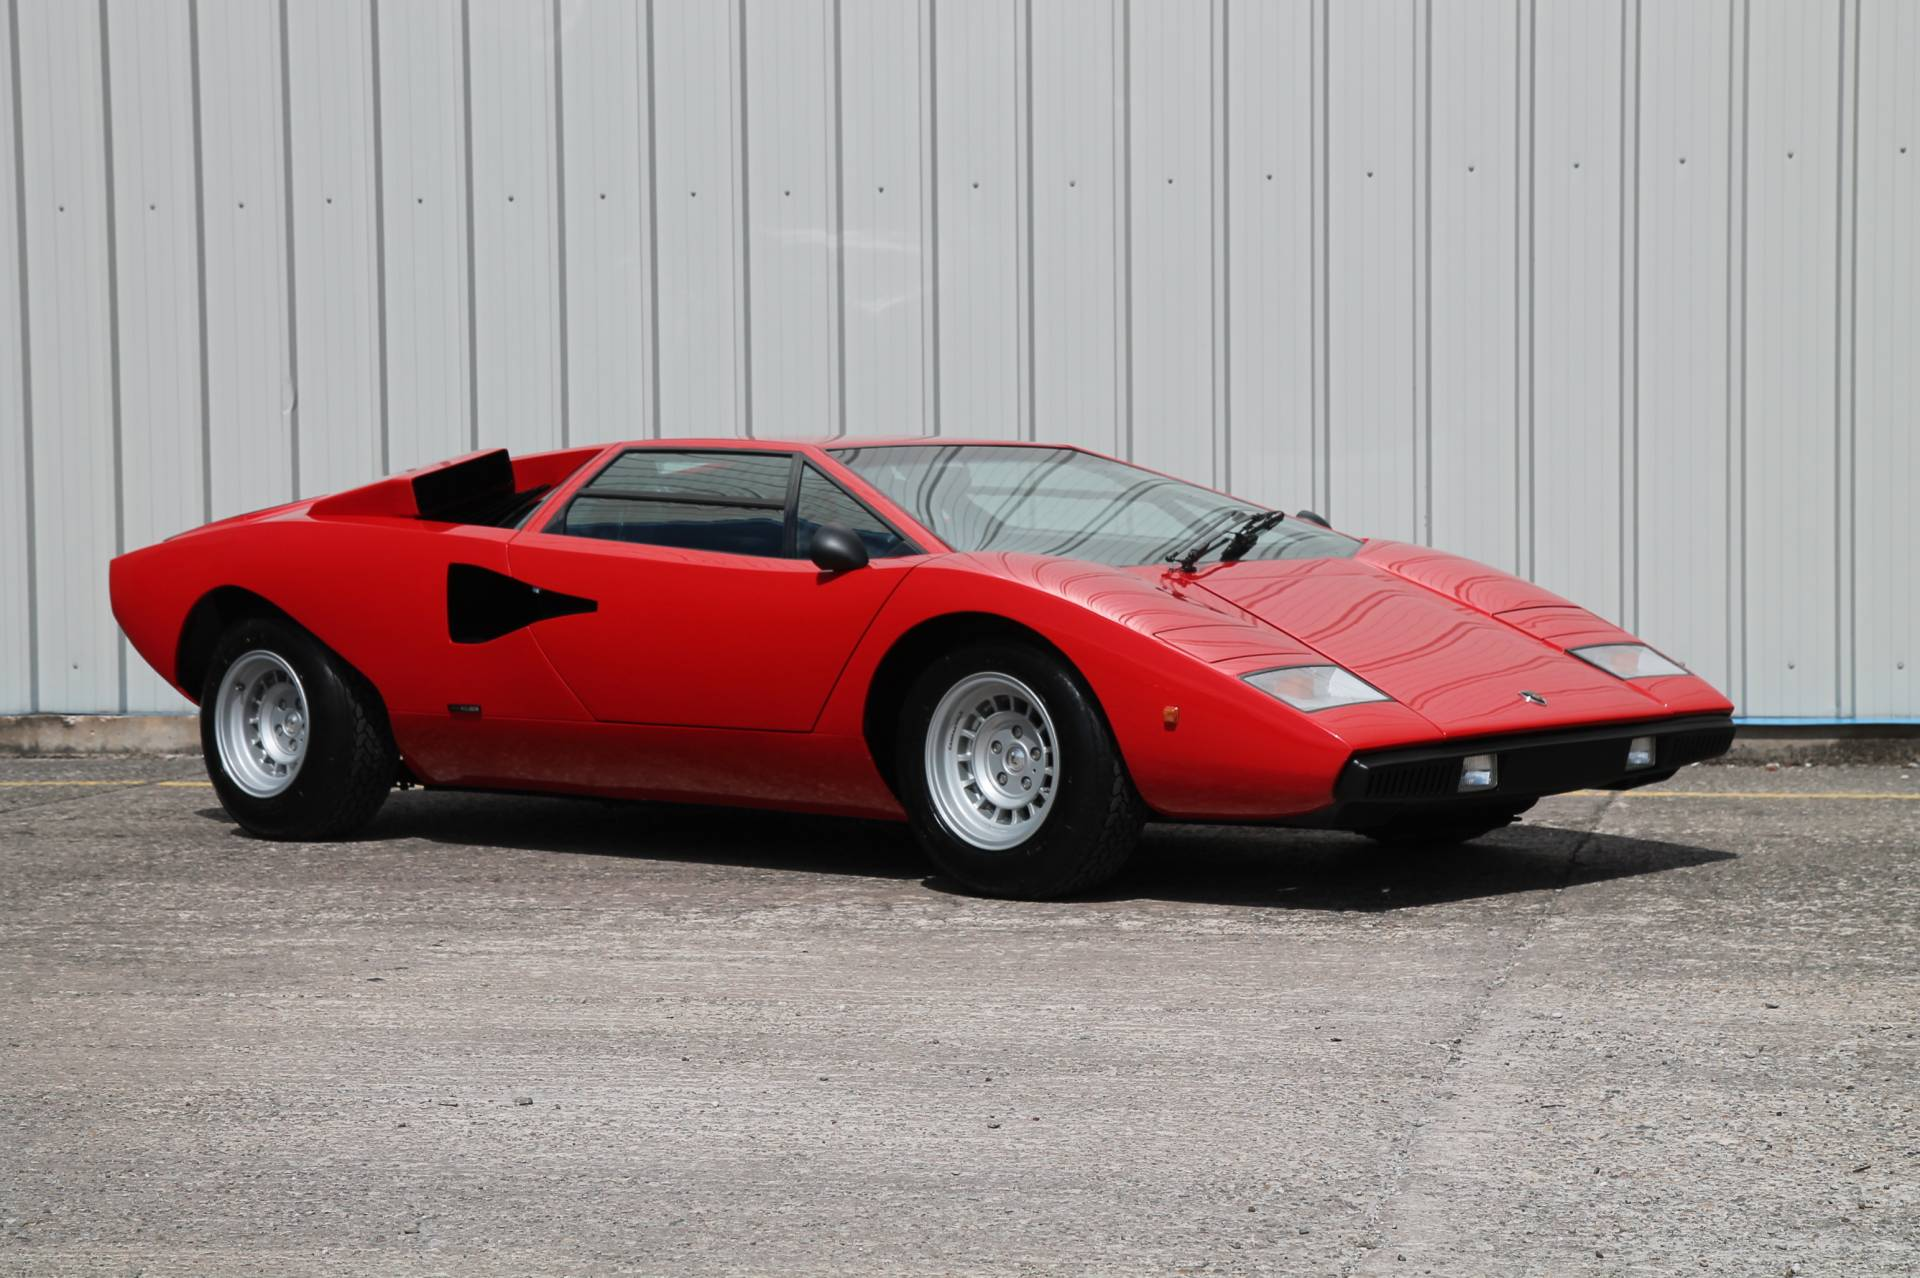 For Sale Lamborghini Countach Lp 400 1977 Offered For